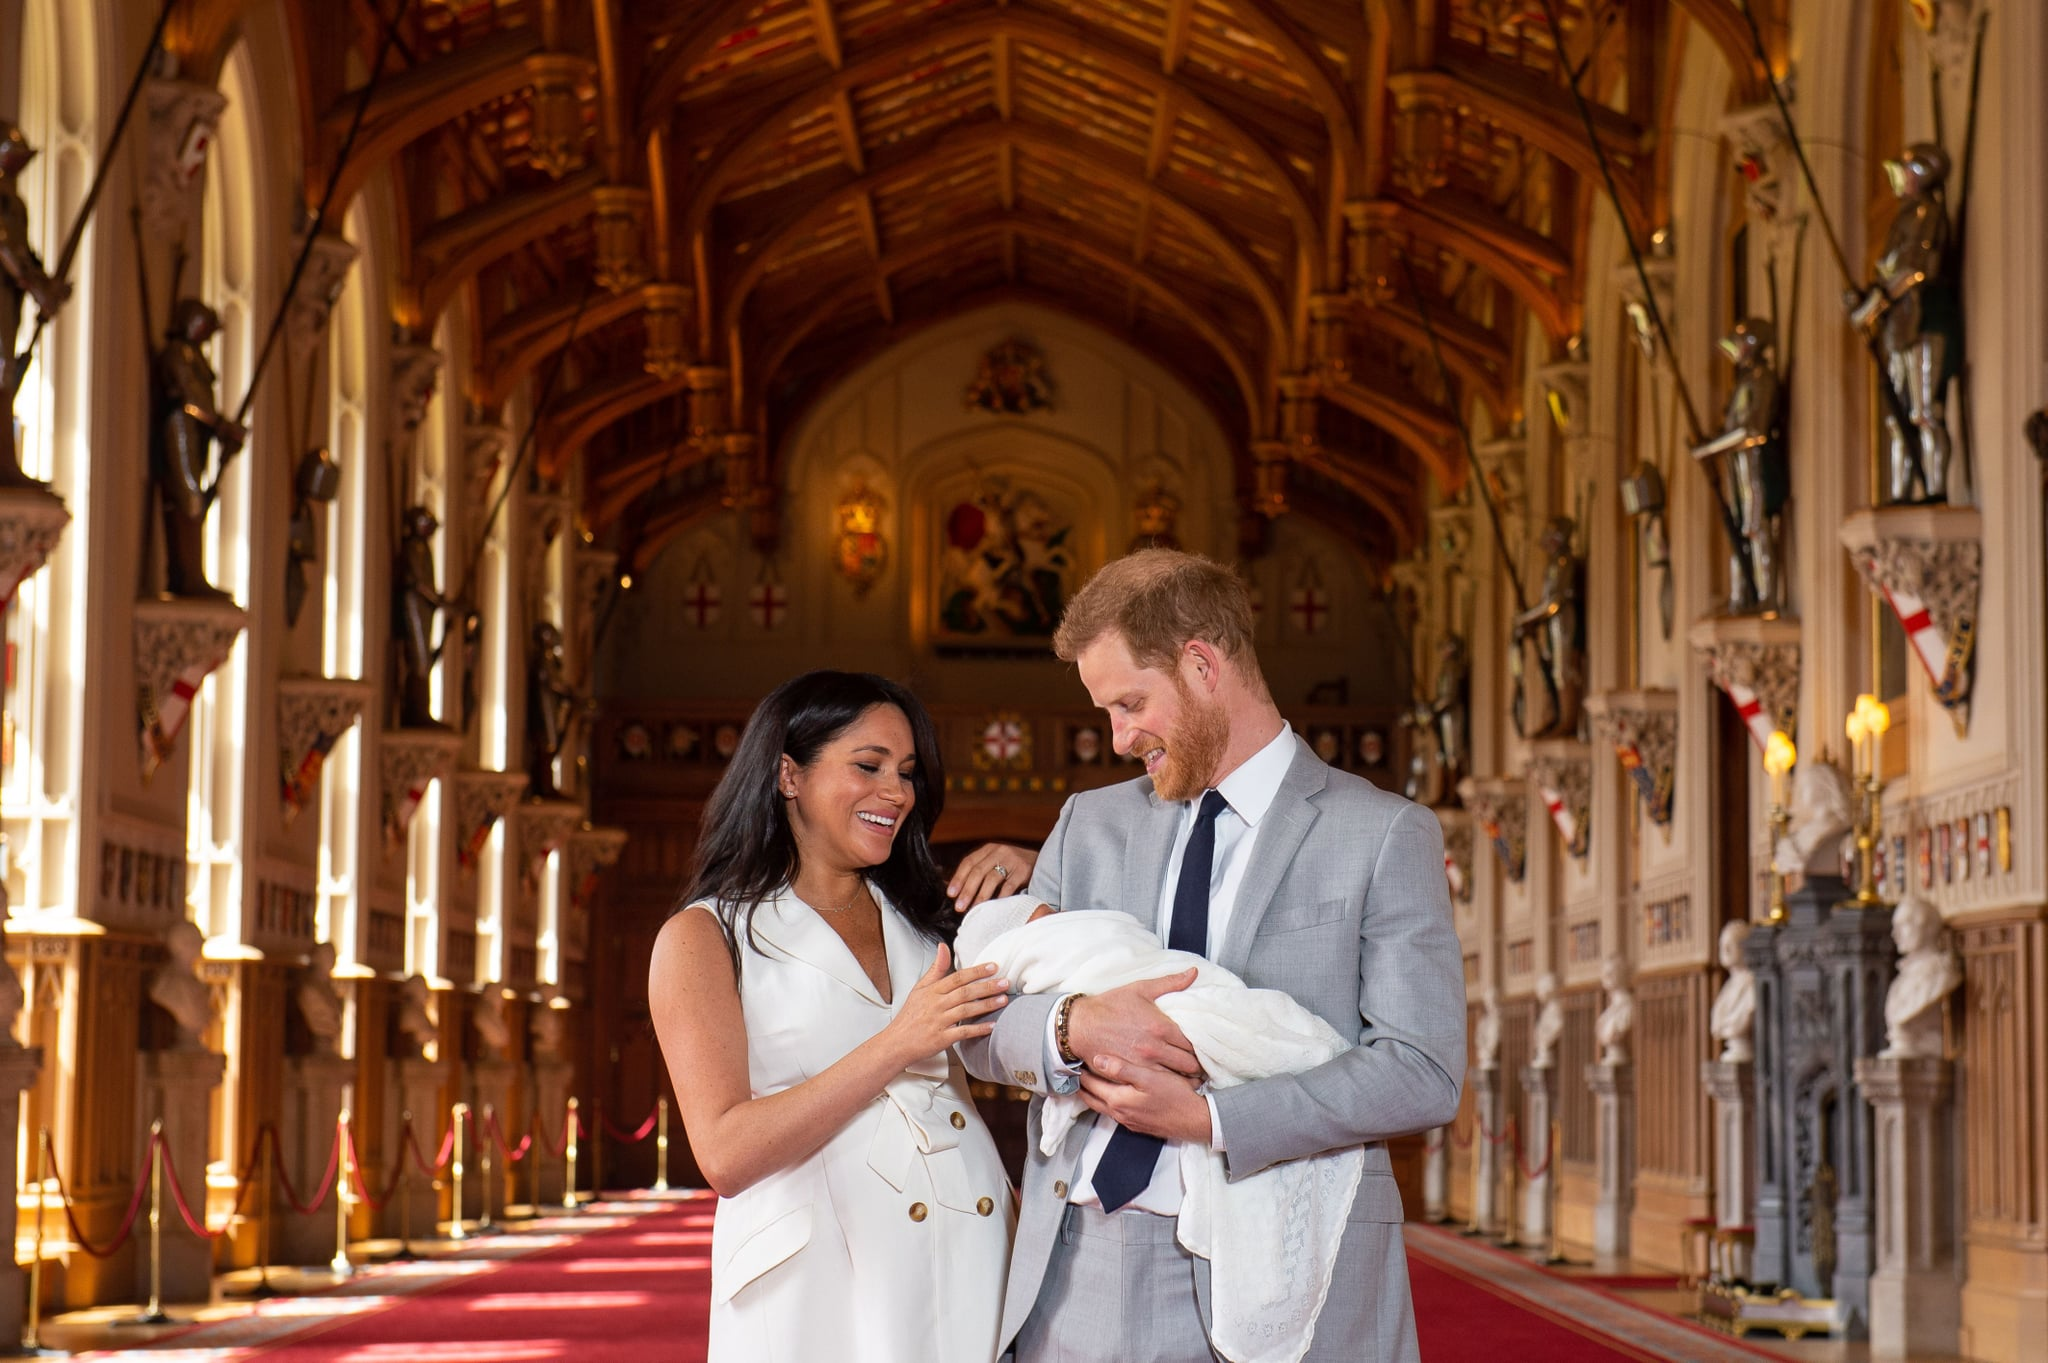 TOPSHOT - Britain's Prince Harry, Duke of Sussex (R), and his wife Meghan, Duchess of Sussex, pose for a photo with their newborn baby son in St George's Hall at Windsor Castle in Windsor, west of London on May 8, 2019. (Photo by Dominic Lipinski / POOL / AFP)        (Photo credit should read DOMINIC LIPINSKI/AFP/Getty Images)